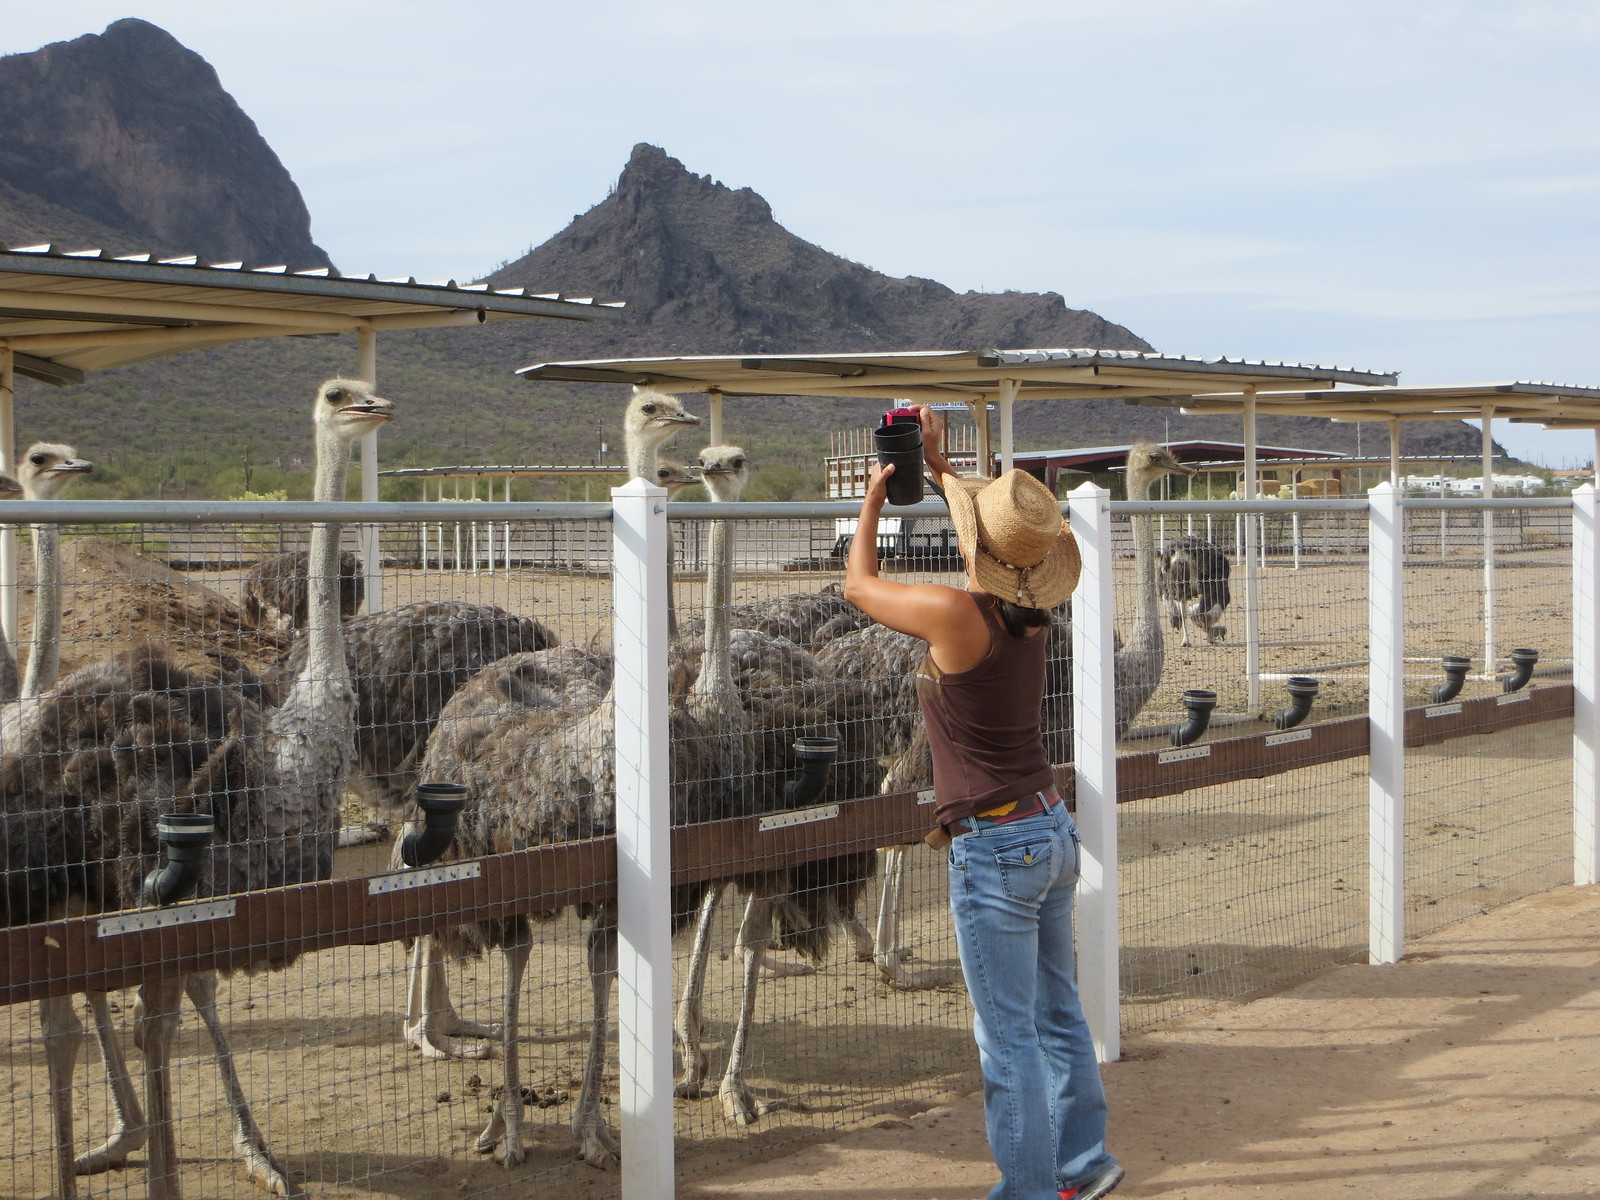 PIC: Rooster Cogburn Ostrich Ranch - A Flock or Herd of Ostriches